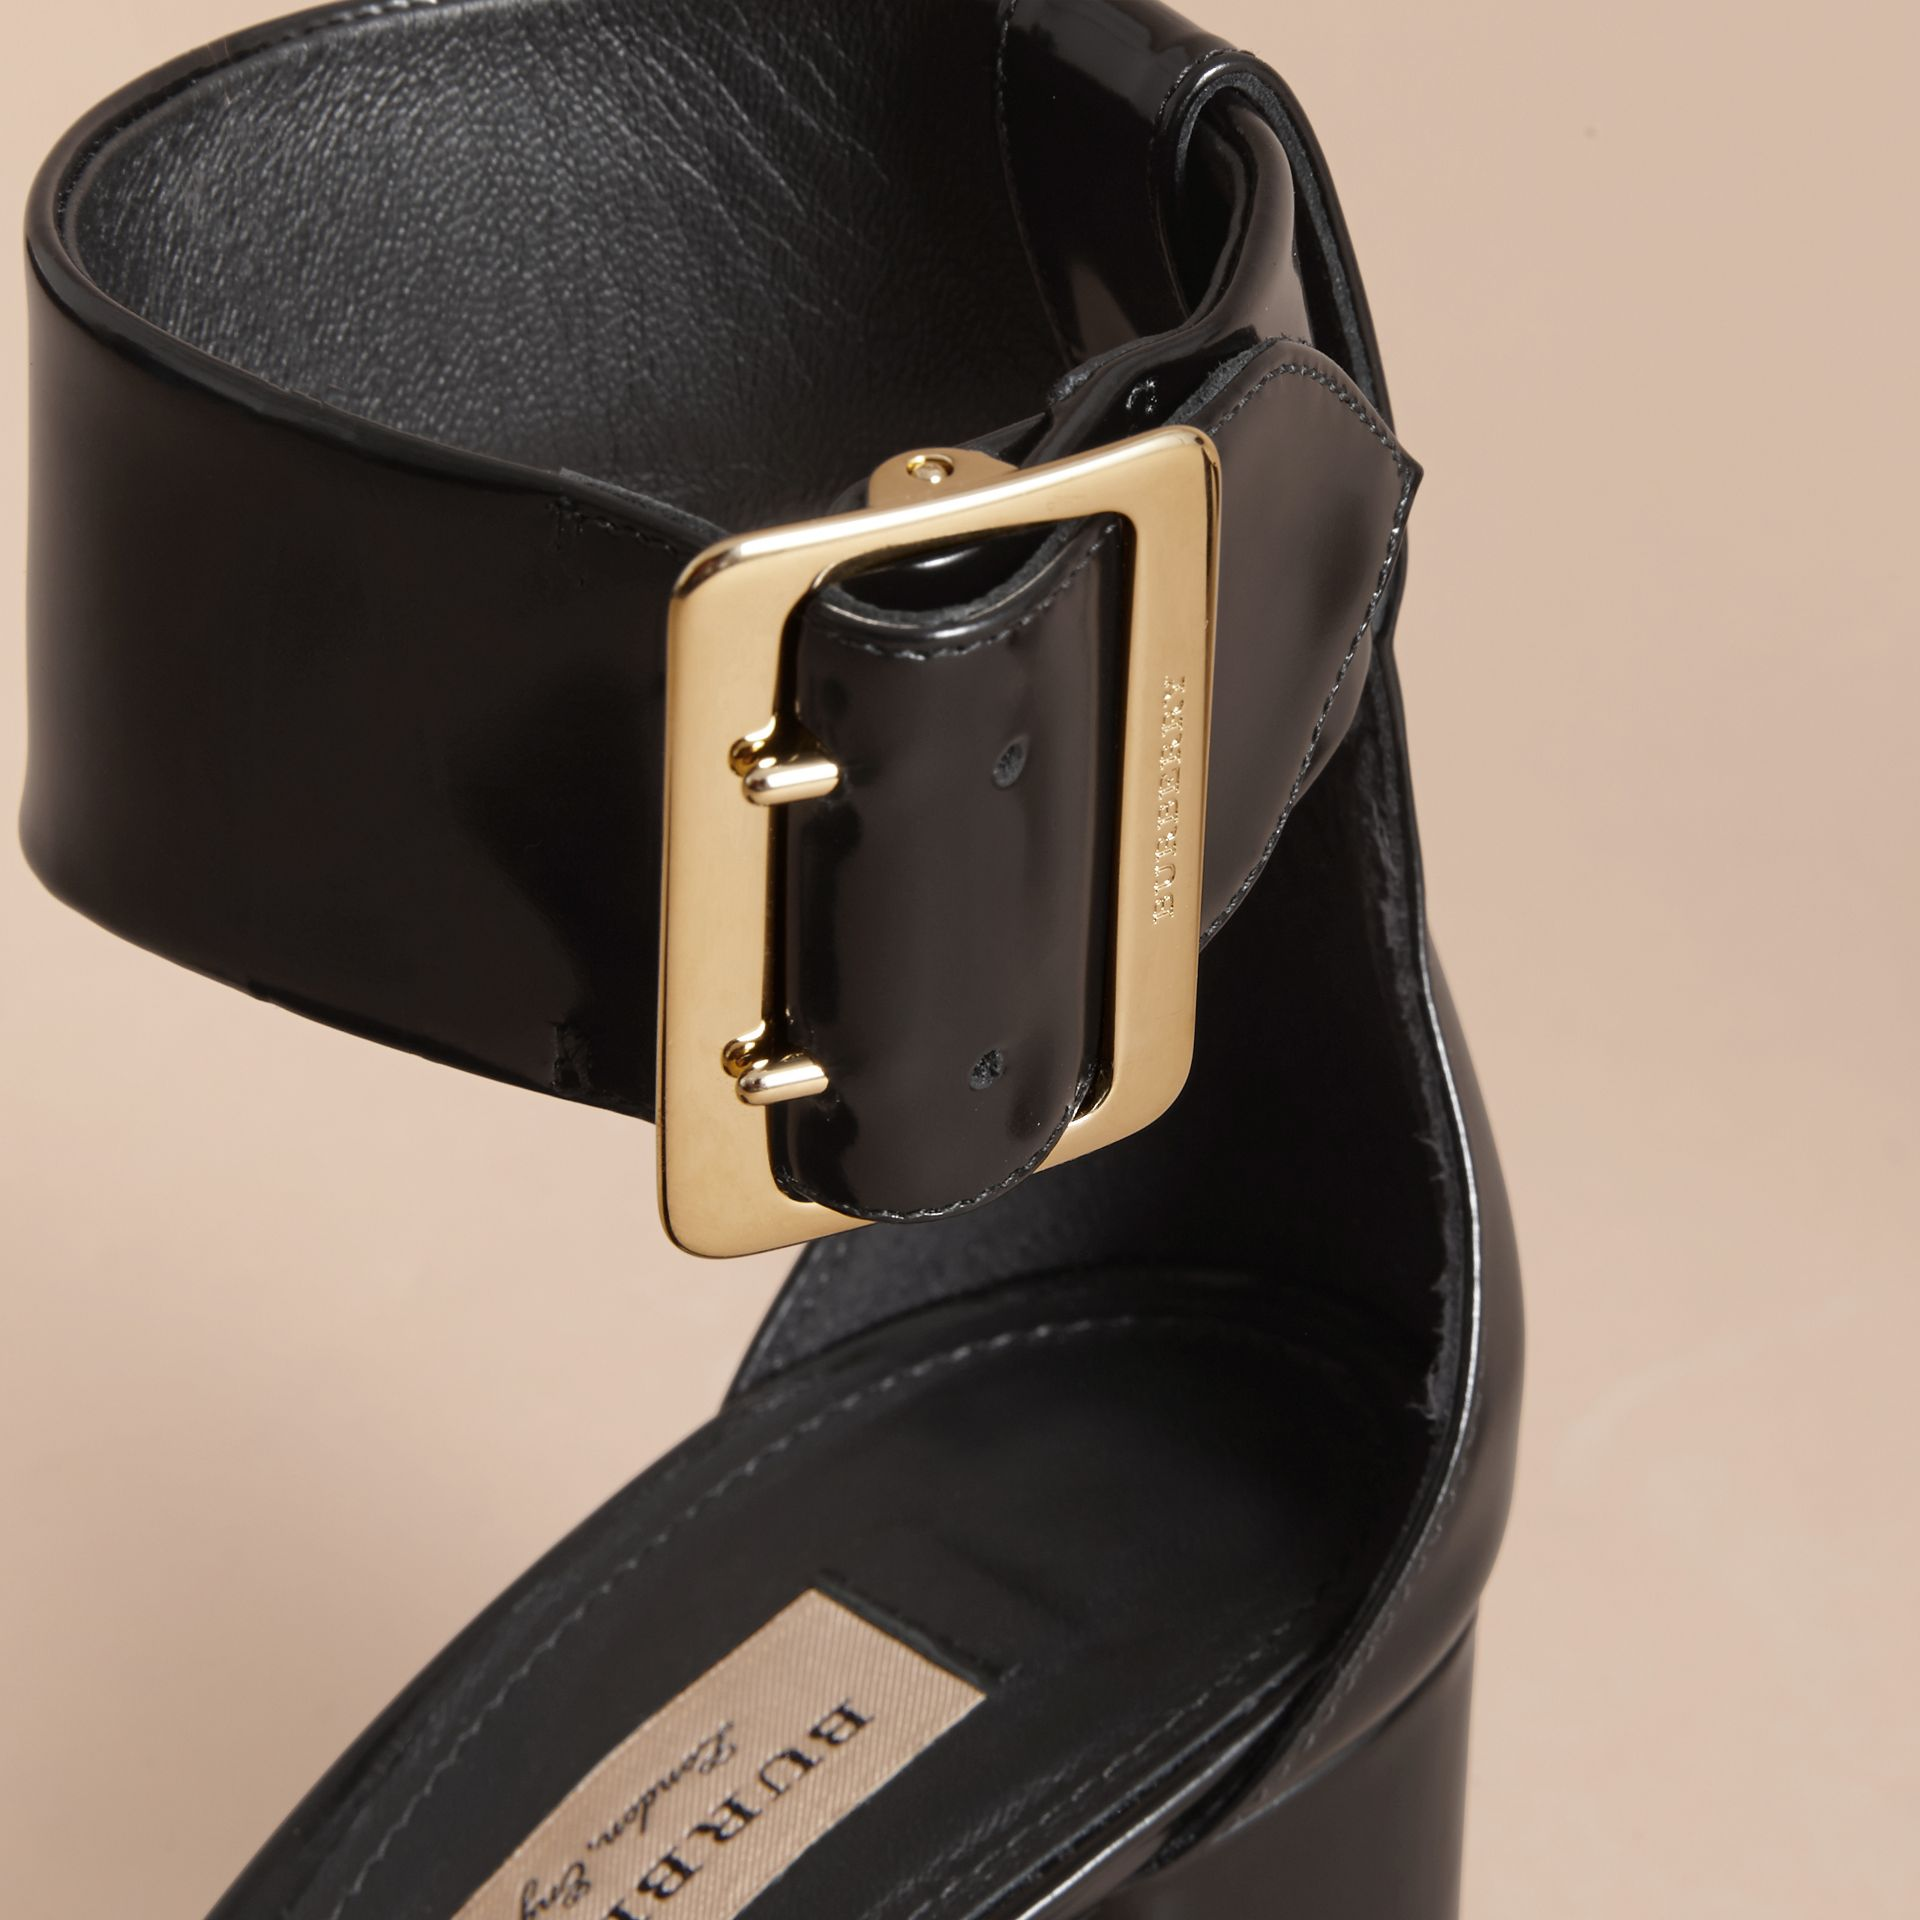 Buckle Detail Patent Leather Sandals in Black - Women | Burberry Singapore - gallery image 2